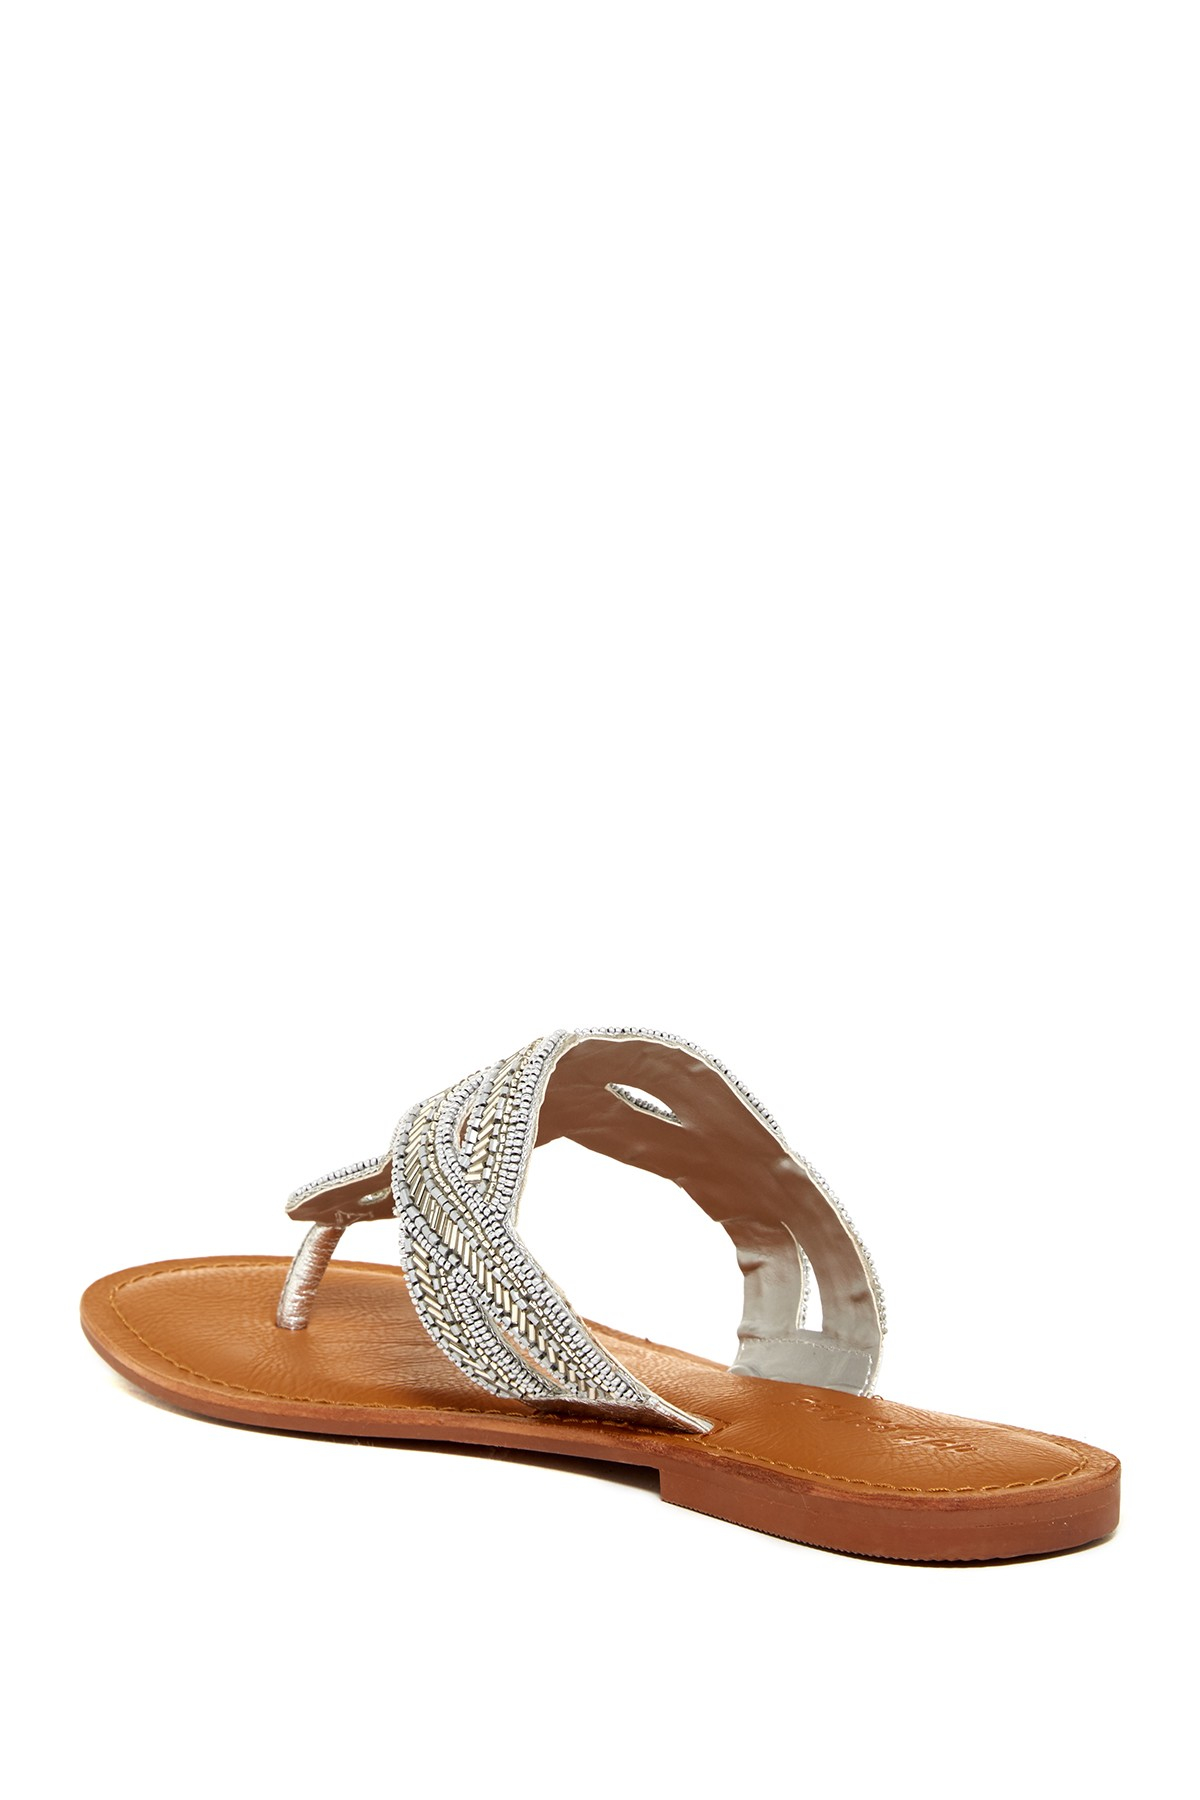 Lyst Not Rated Shark Bay Sandal In Metallic